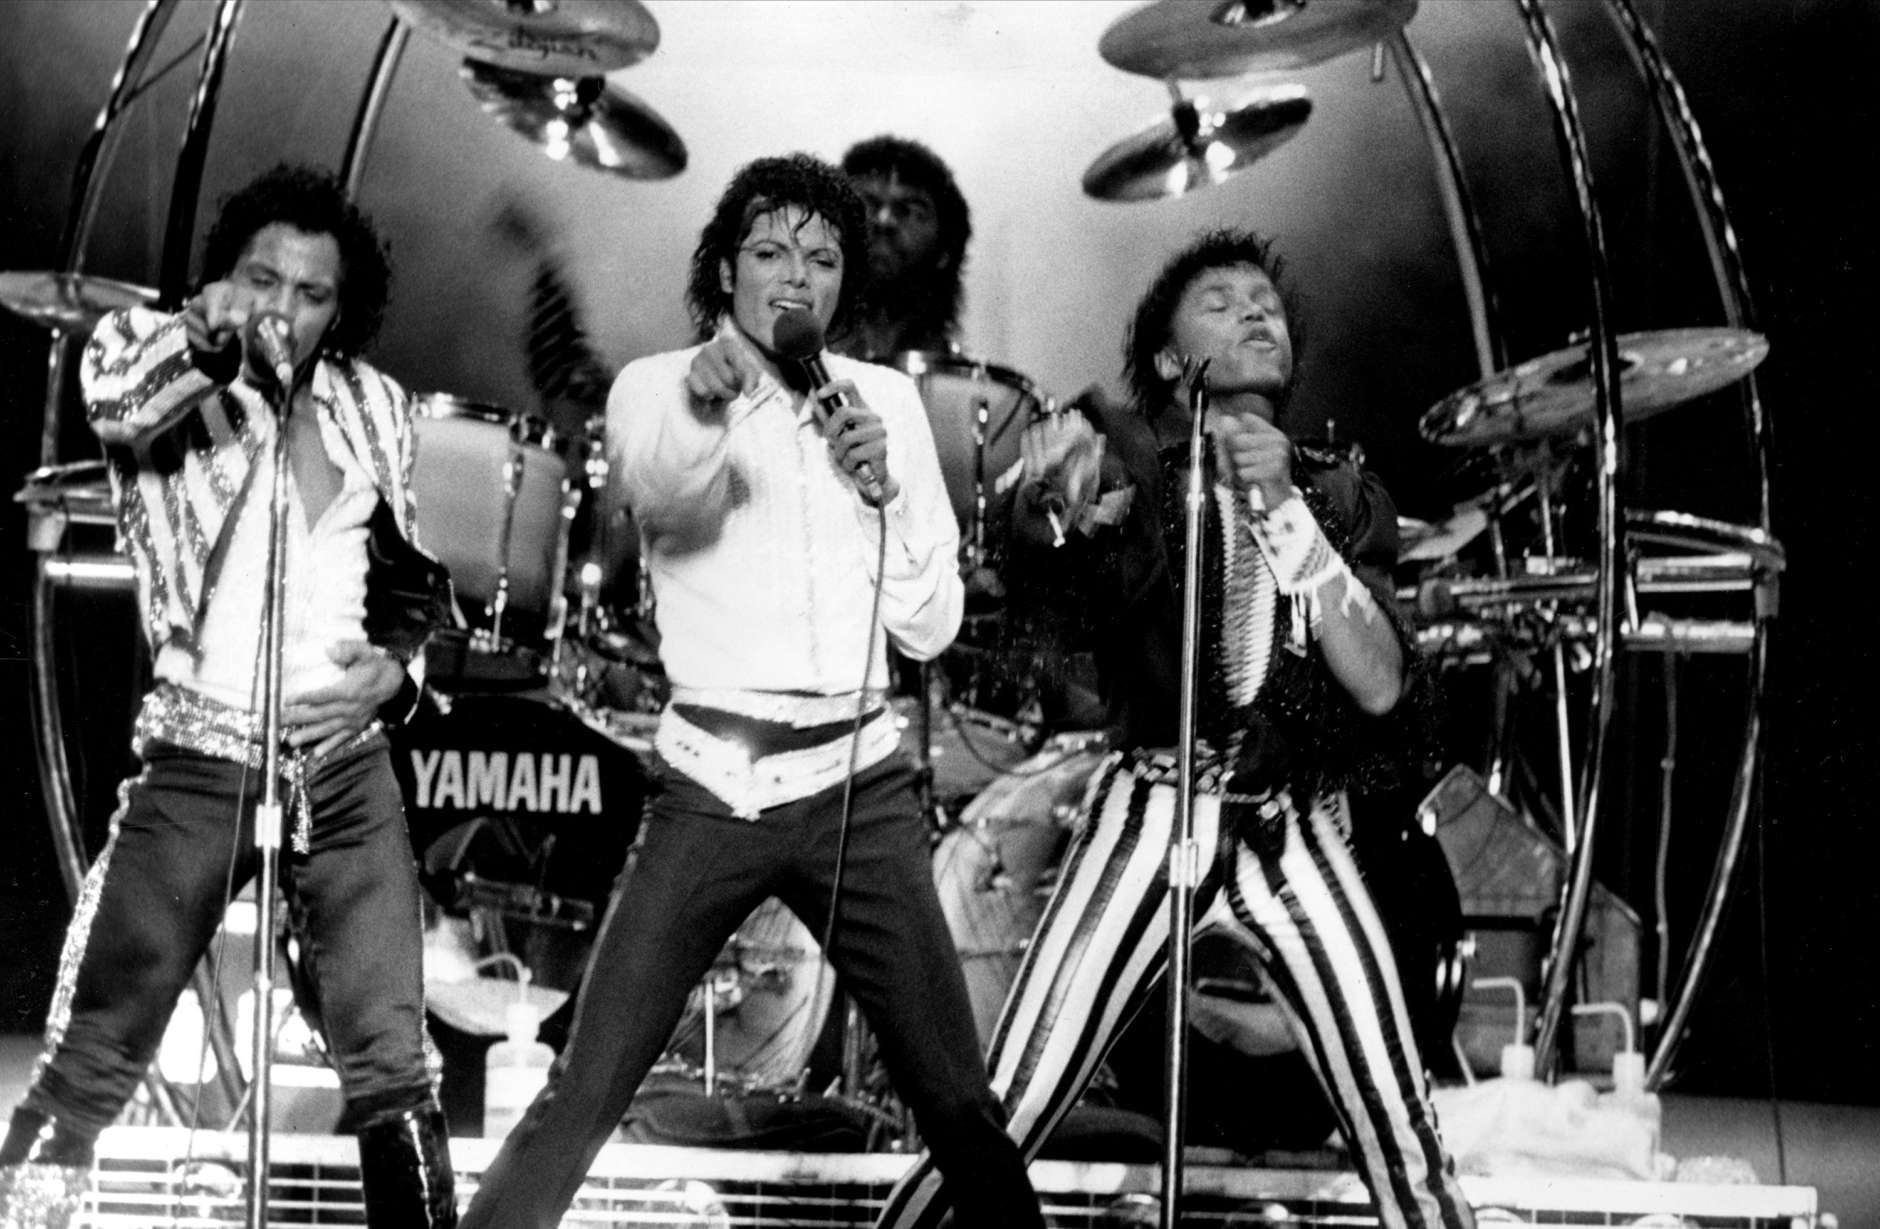 Four of the Jacksons, from left, Tito, Michael, Marlon, on drums, and Randy, are shown performing during their Victory Tour concert at RFK Stadium in Washington, D.C., on Sept. 22, 1984.  (AP Photo/Bill Auth)